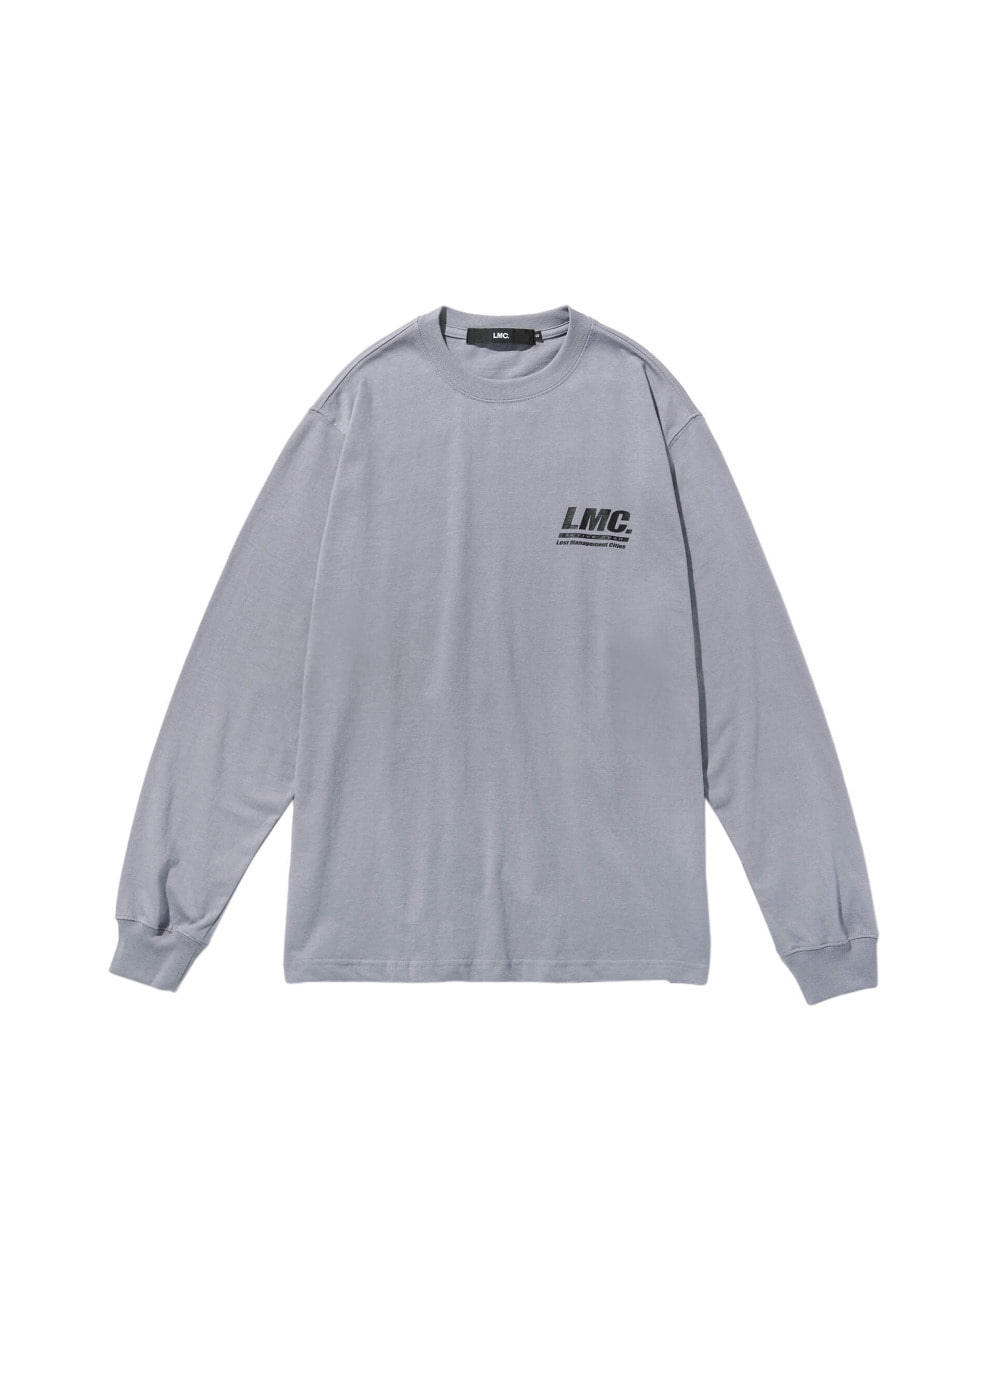 LMC ACTIVE GEAR LONG SLV TEE gray